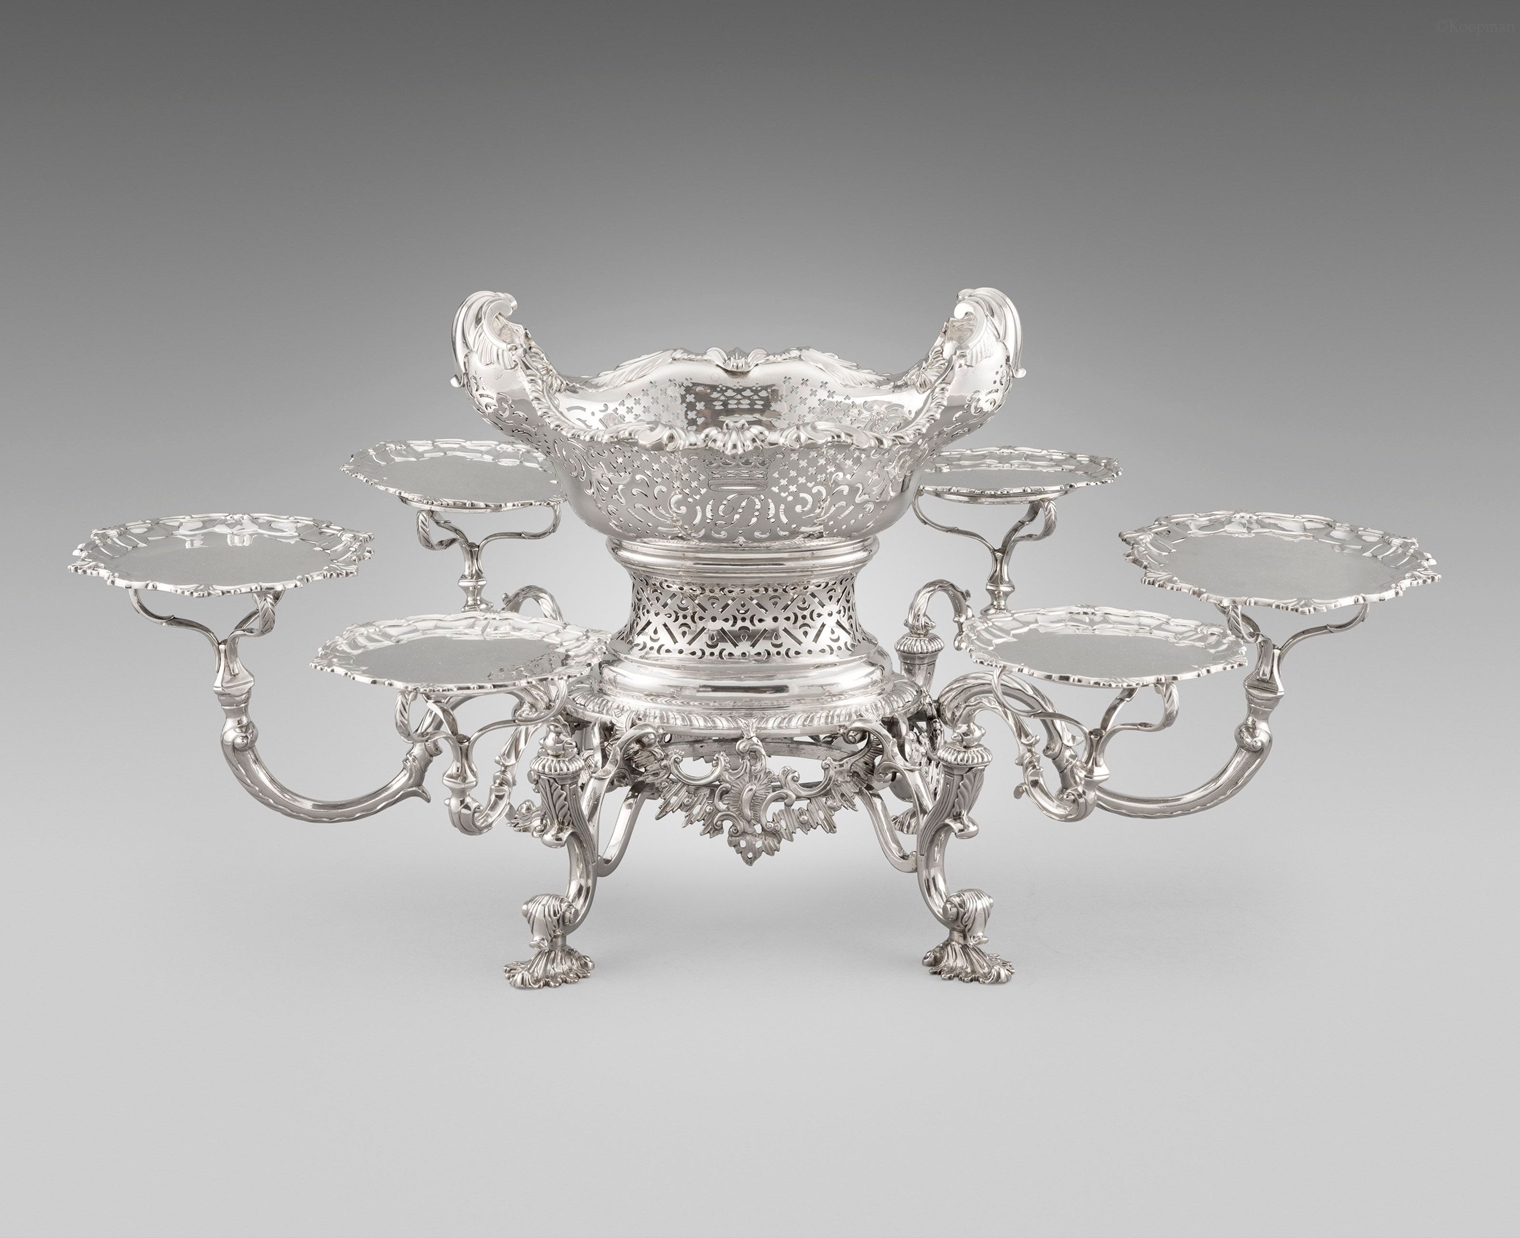 An Extremely Rare and Important Scottish Epergne